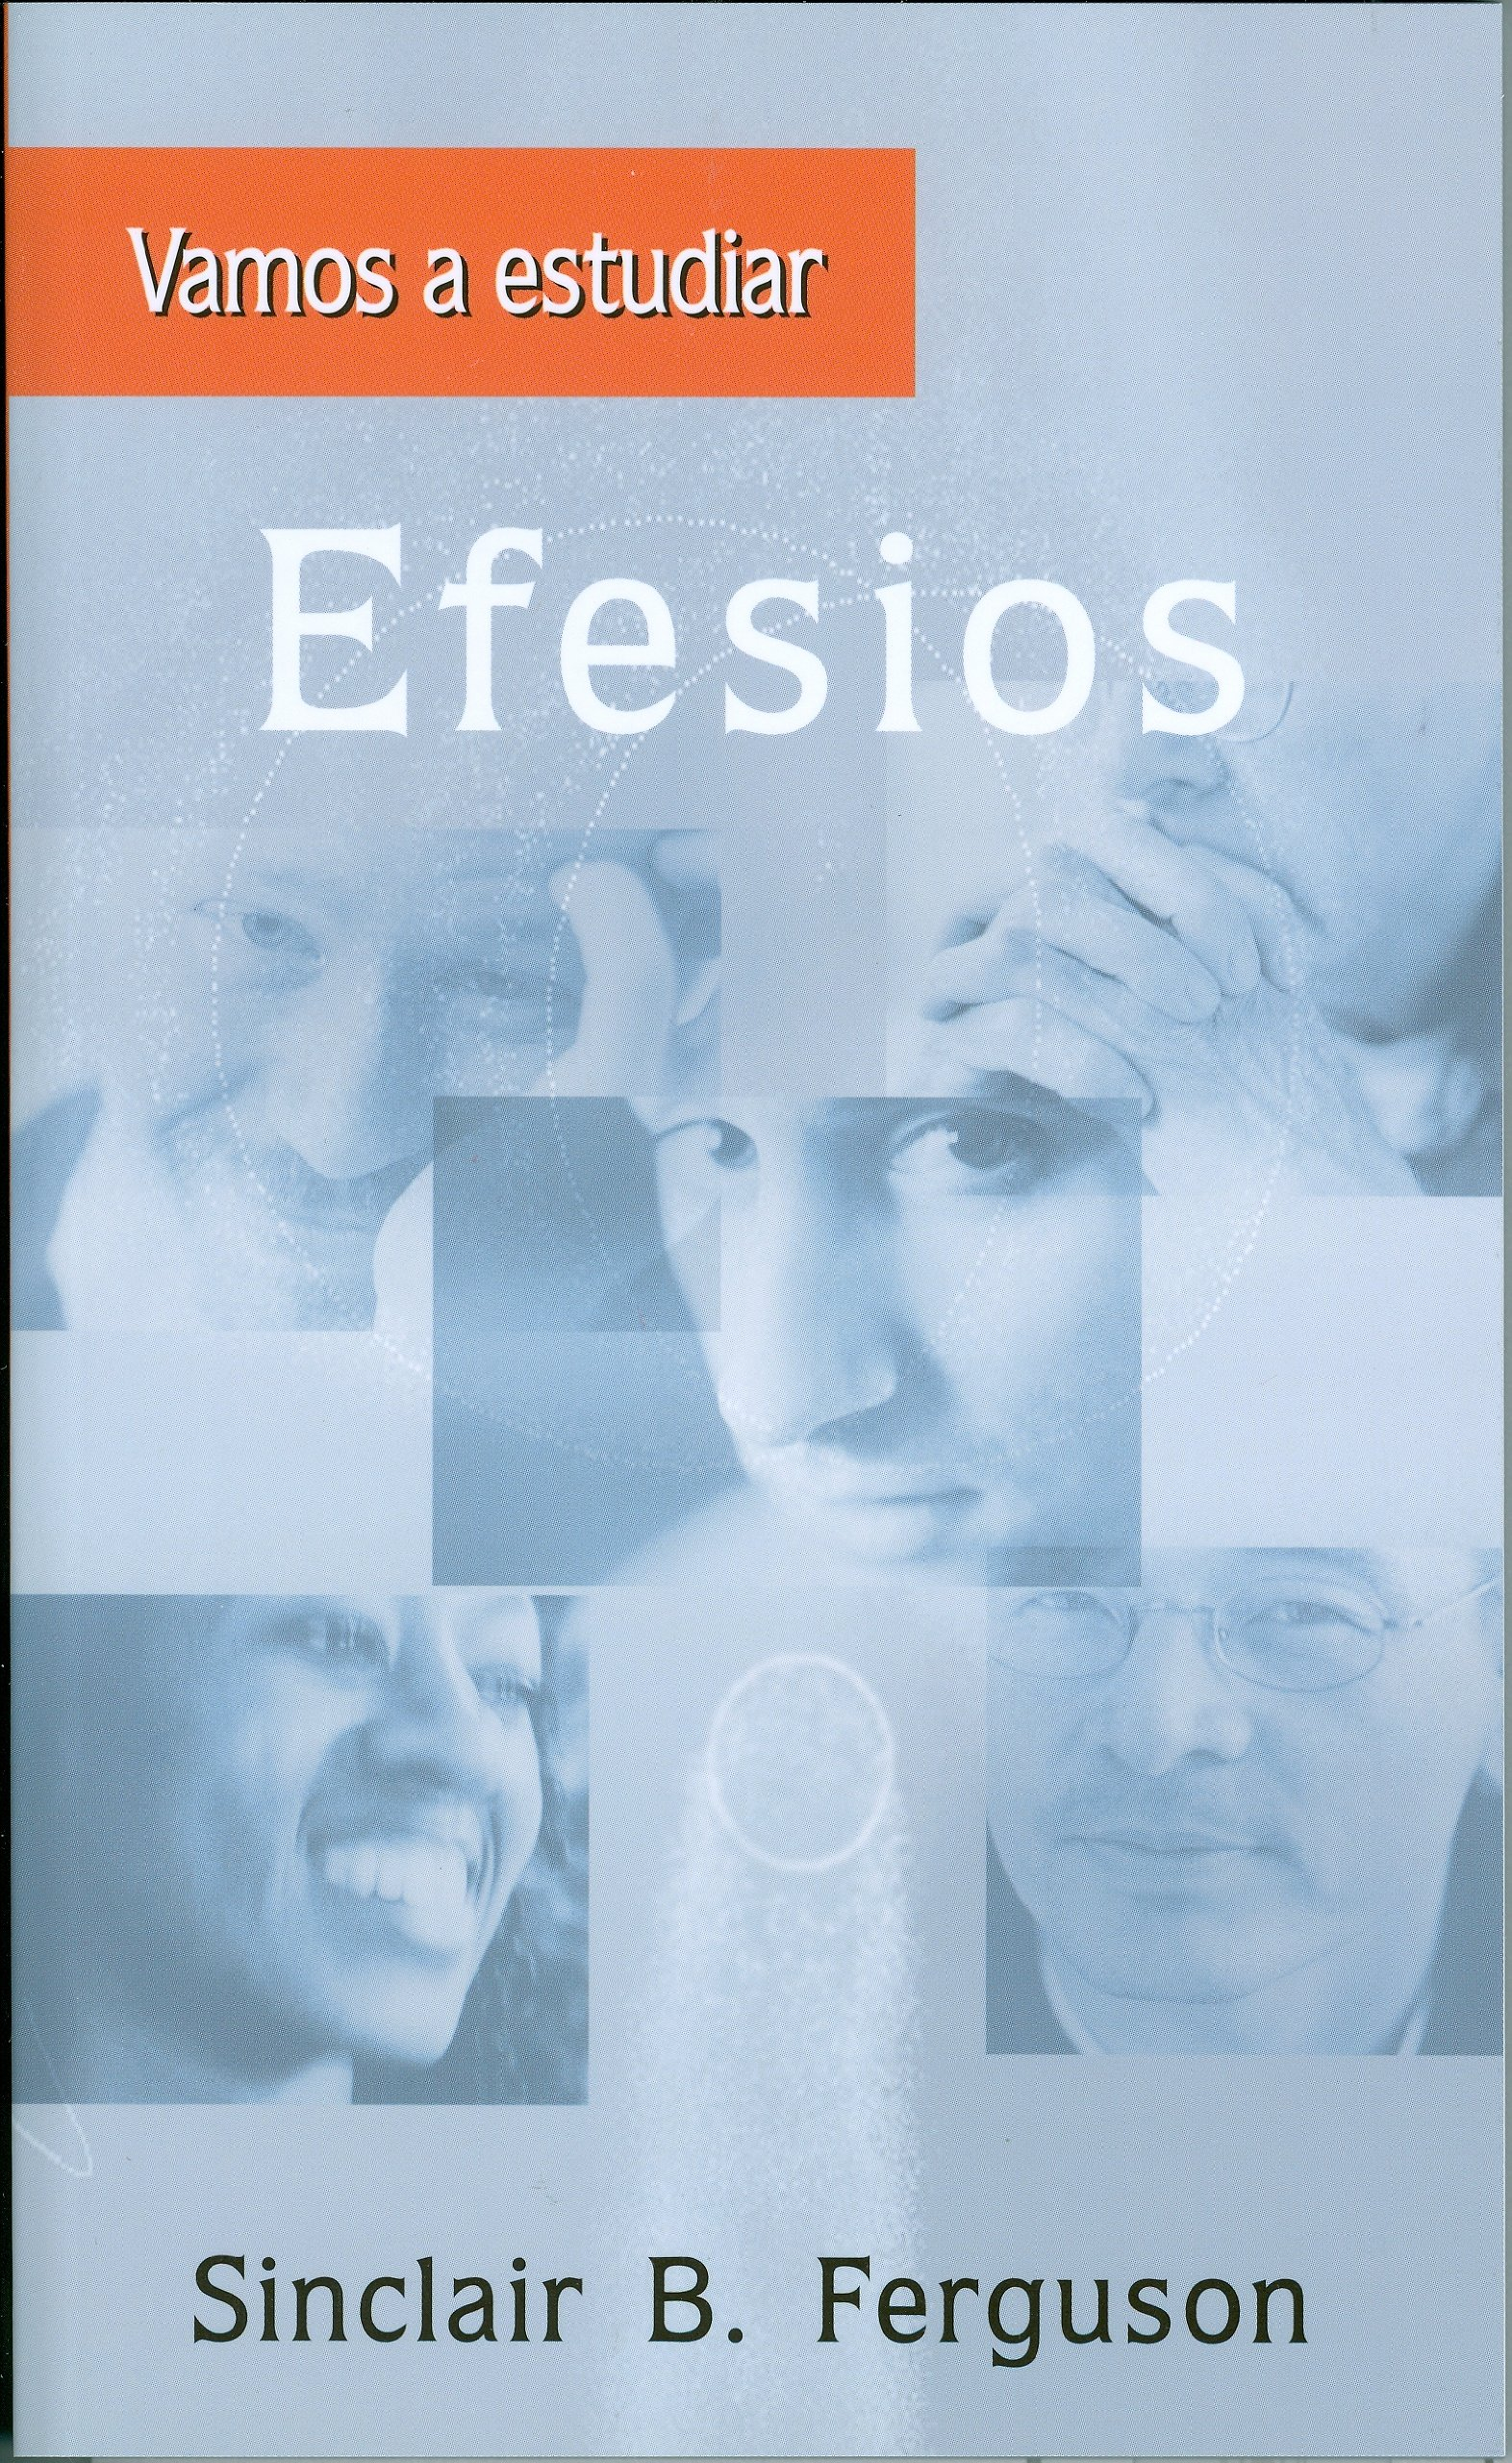 Vamos a estudiar Efesios (Spanish Edition): Sinclair B. Ferguson: 9781848710290: Amazon.com: Books